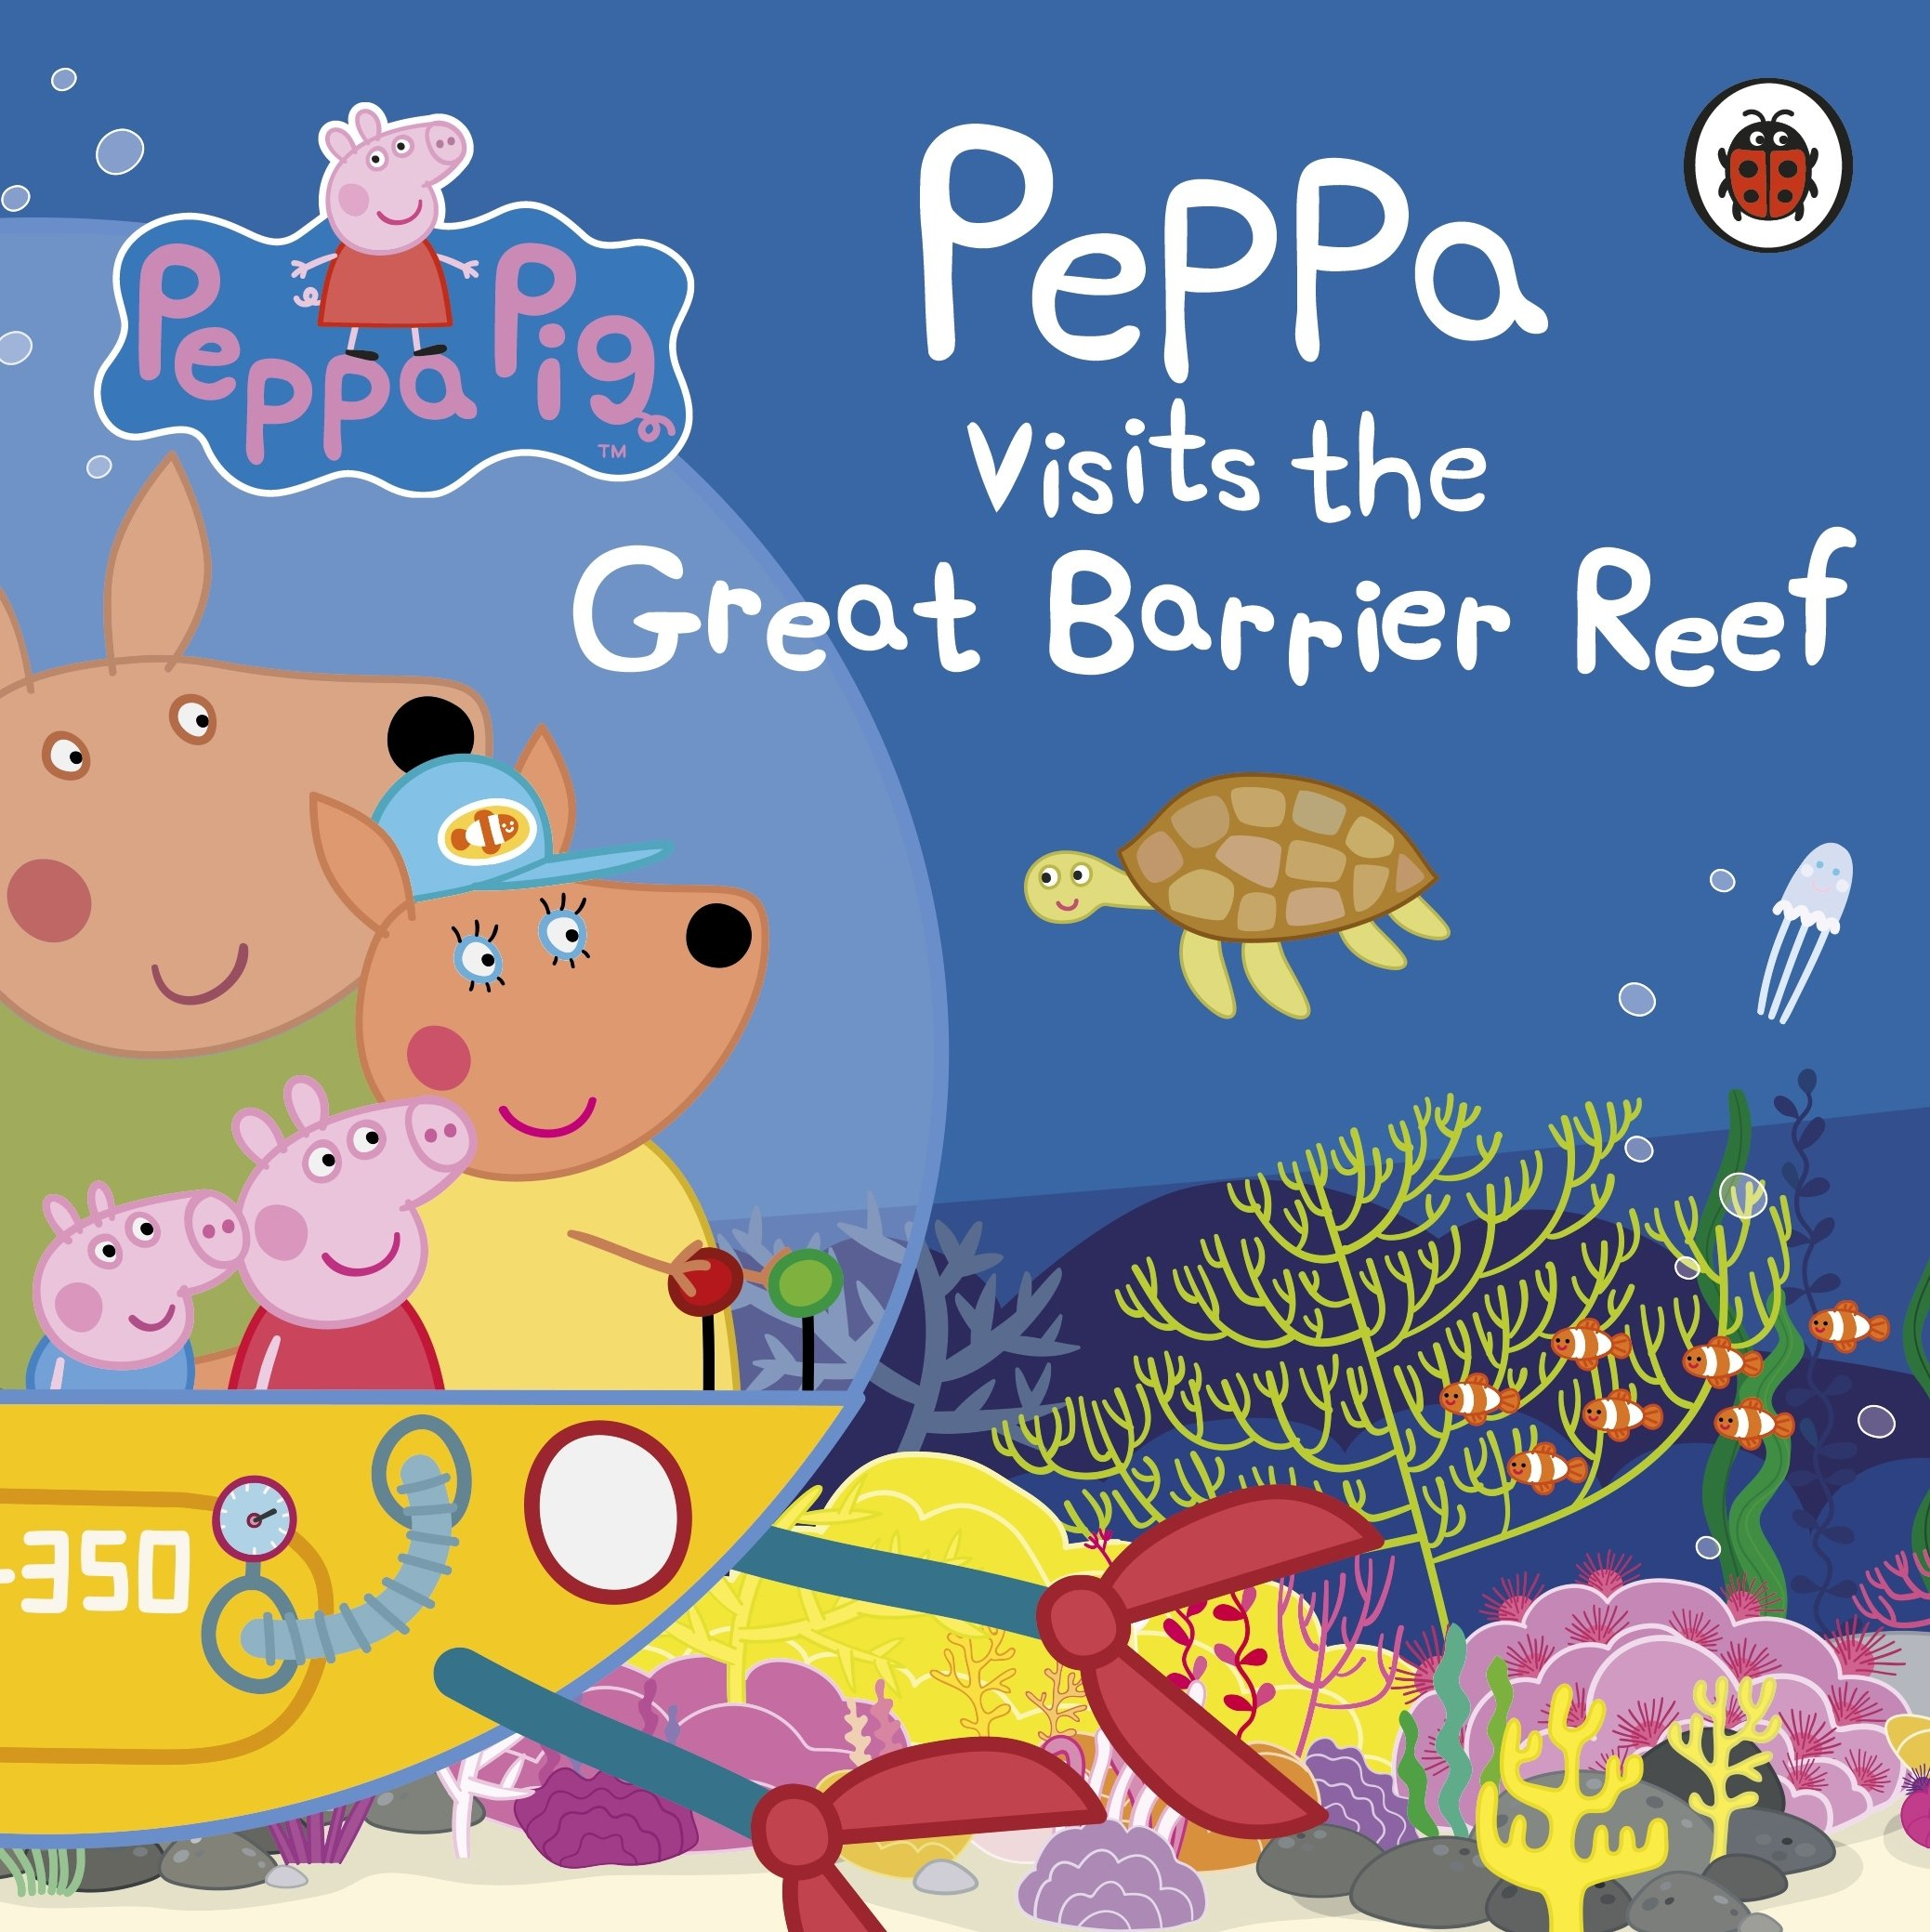 Buy Peppa Pig: Peppa Visits the Great Barrier Reef Book.